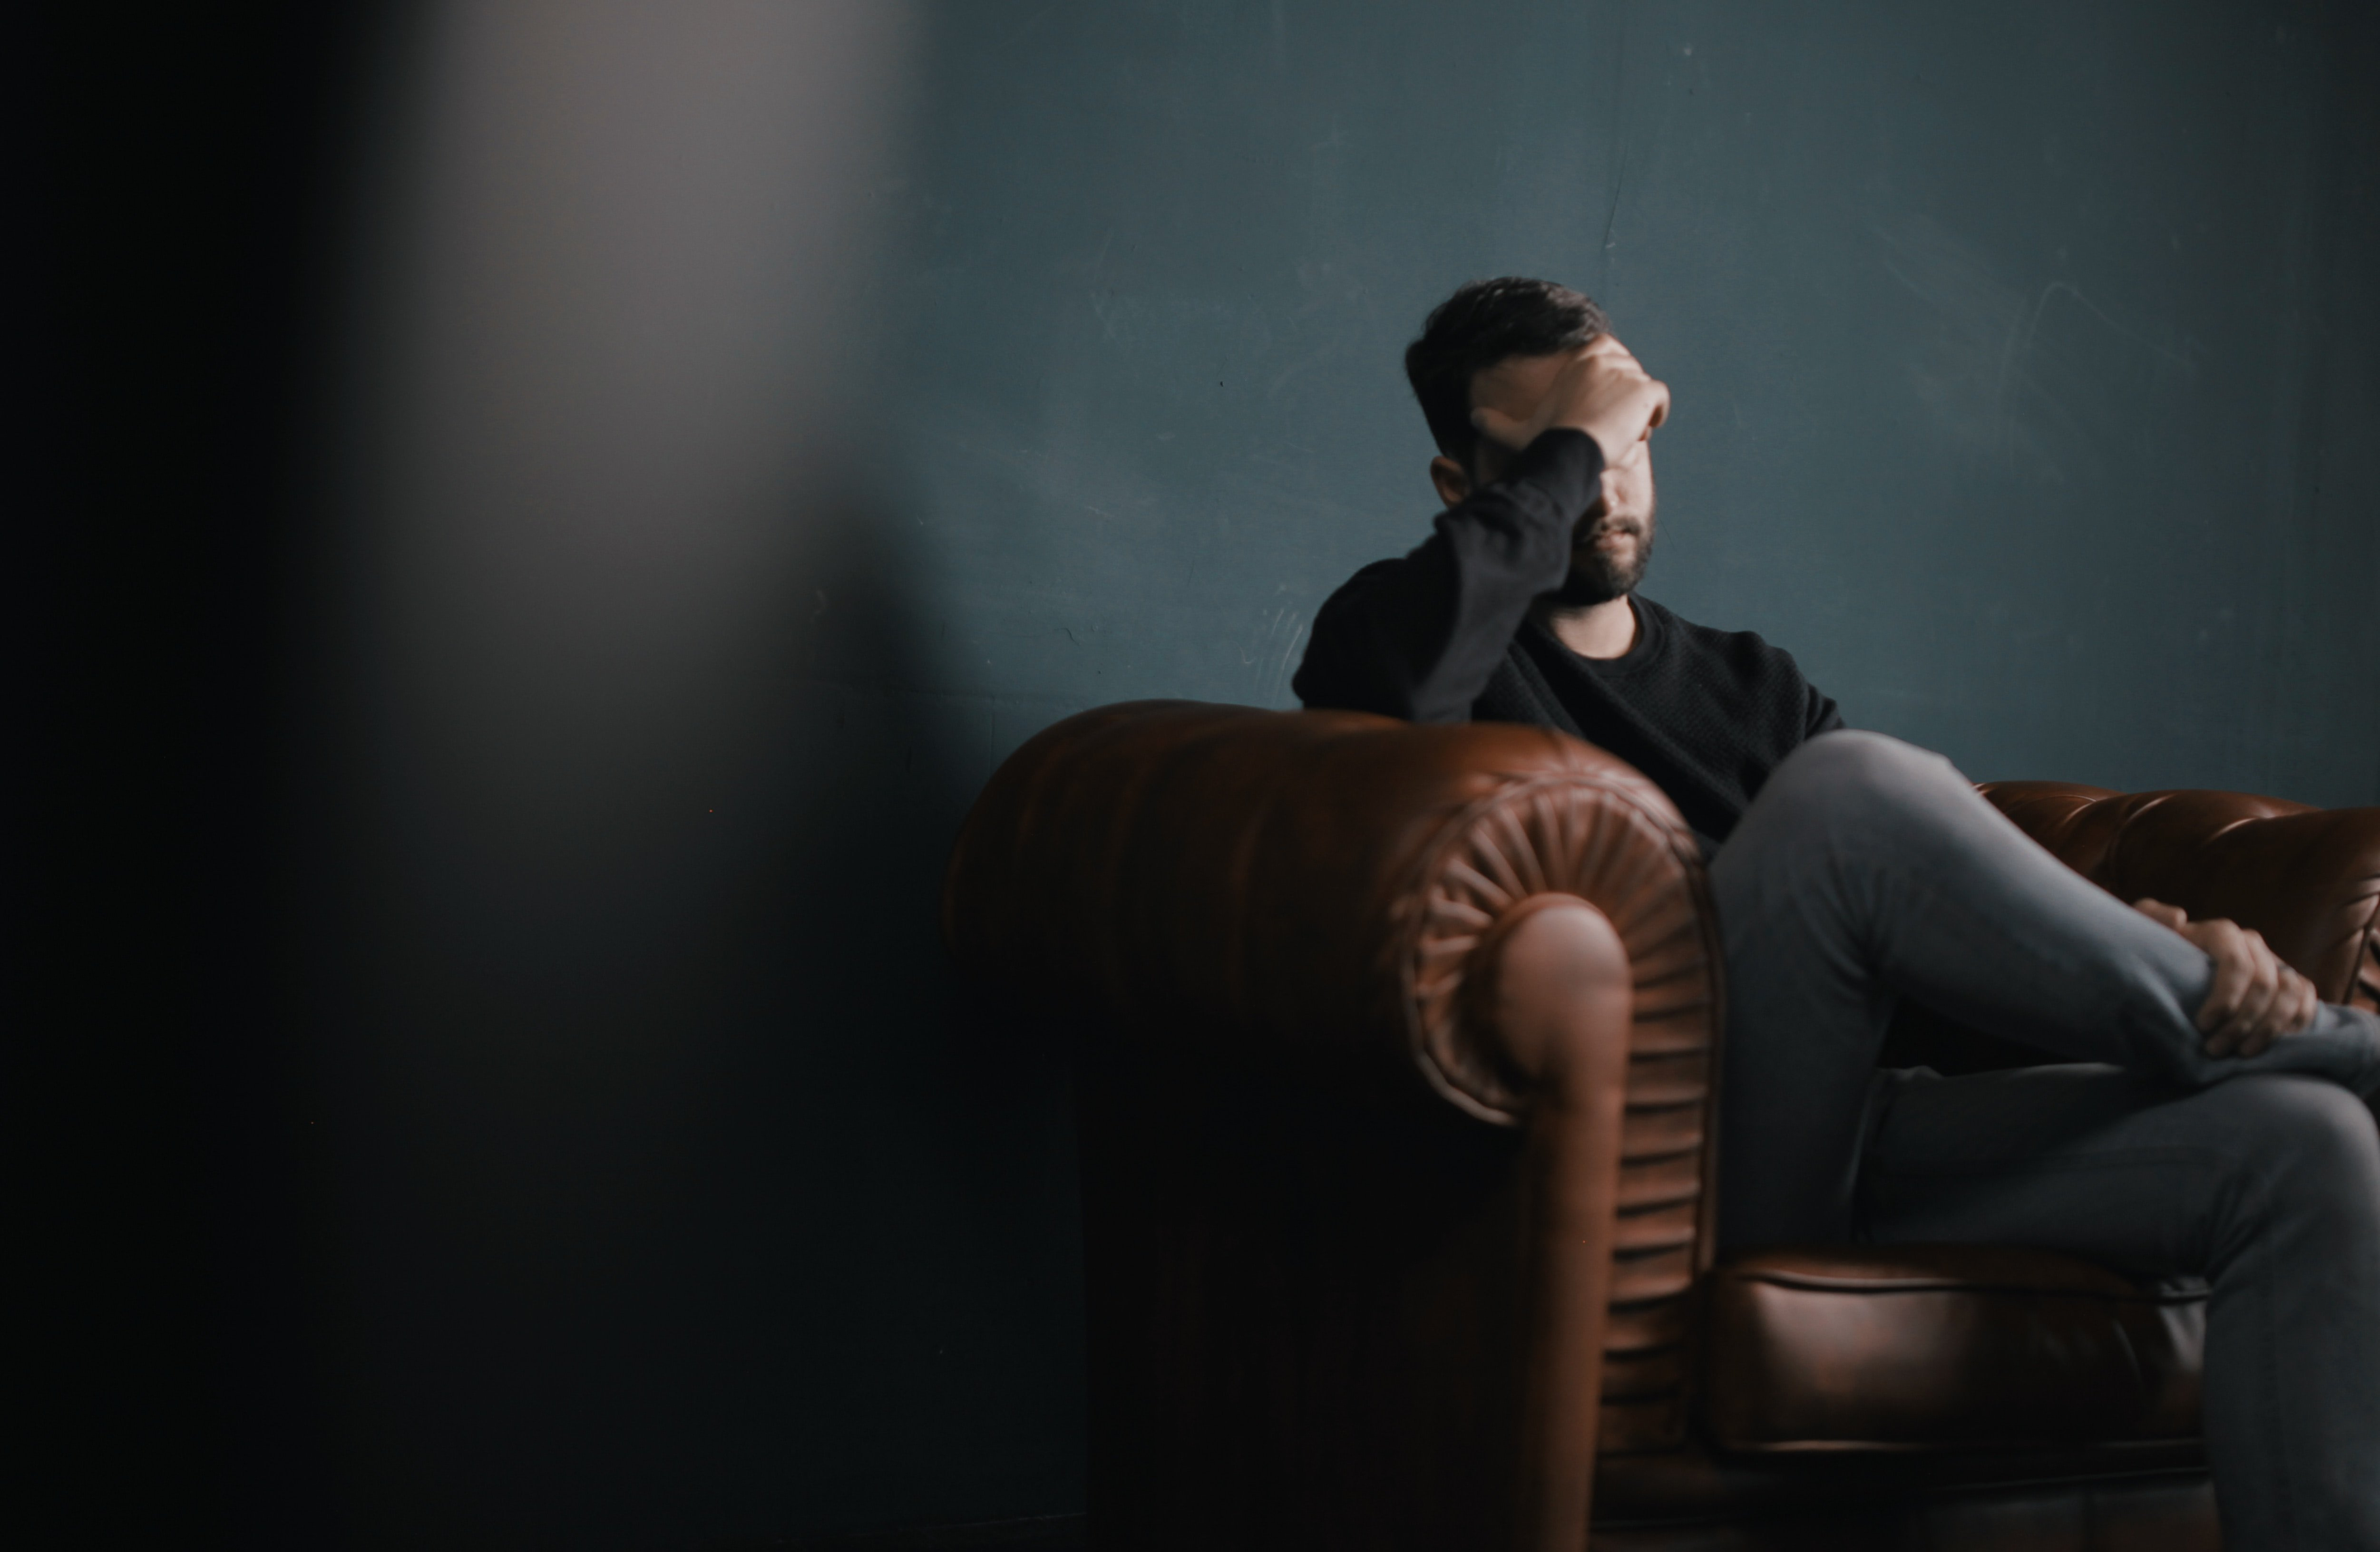 A sad man sitting on a sofa | Source: Unsplash.com